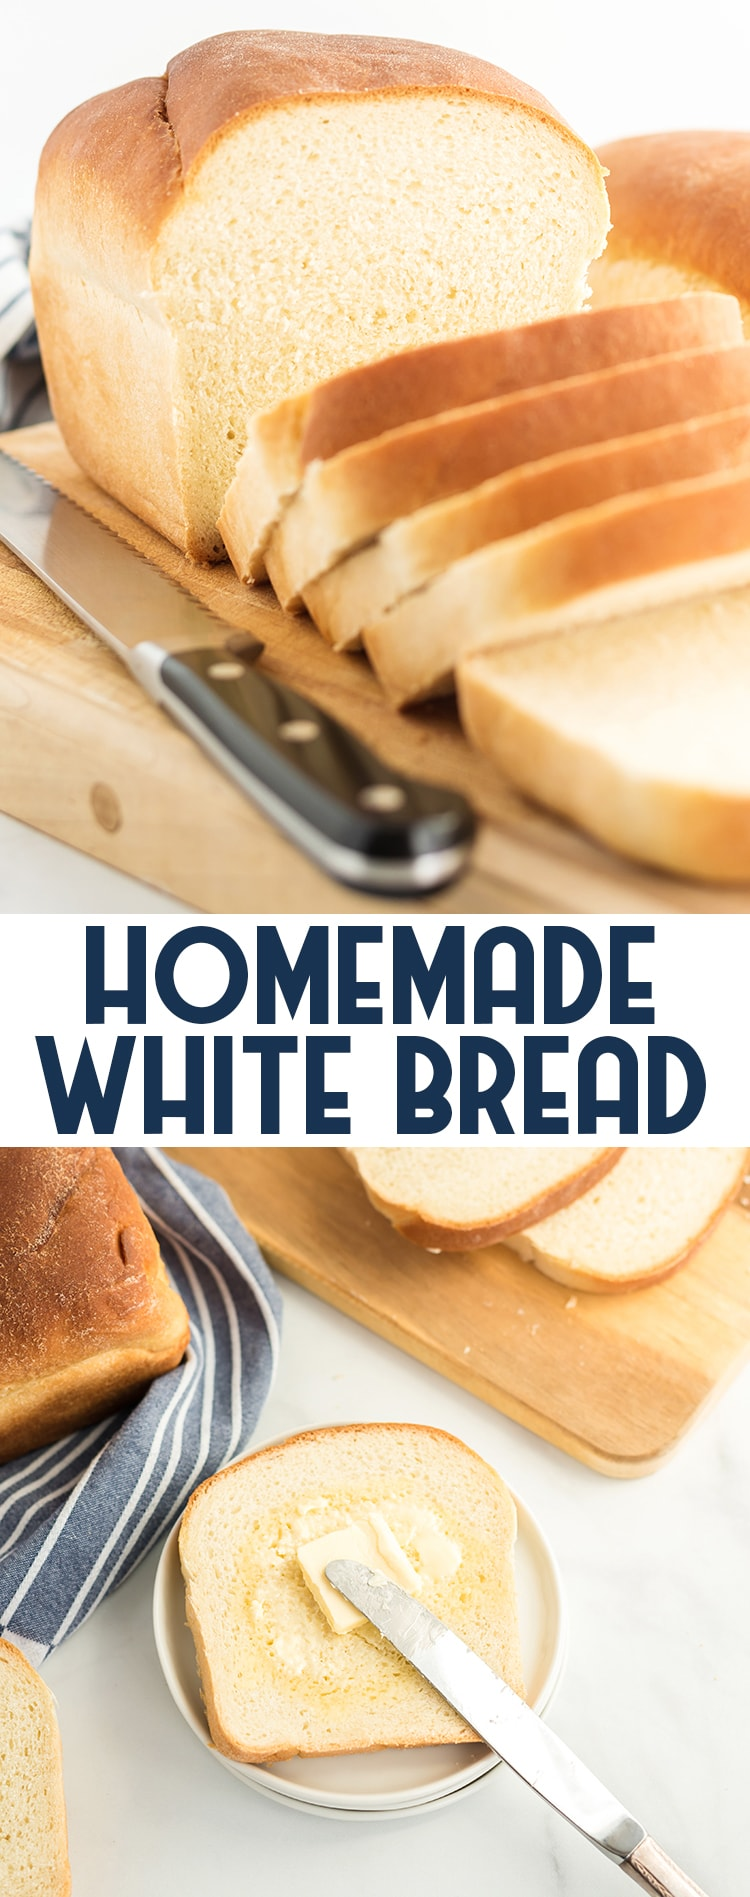 A loaf of white bread cut into slices with text overlay for pinterest